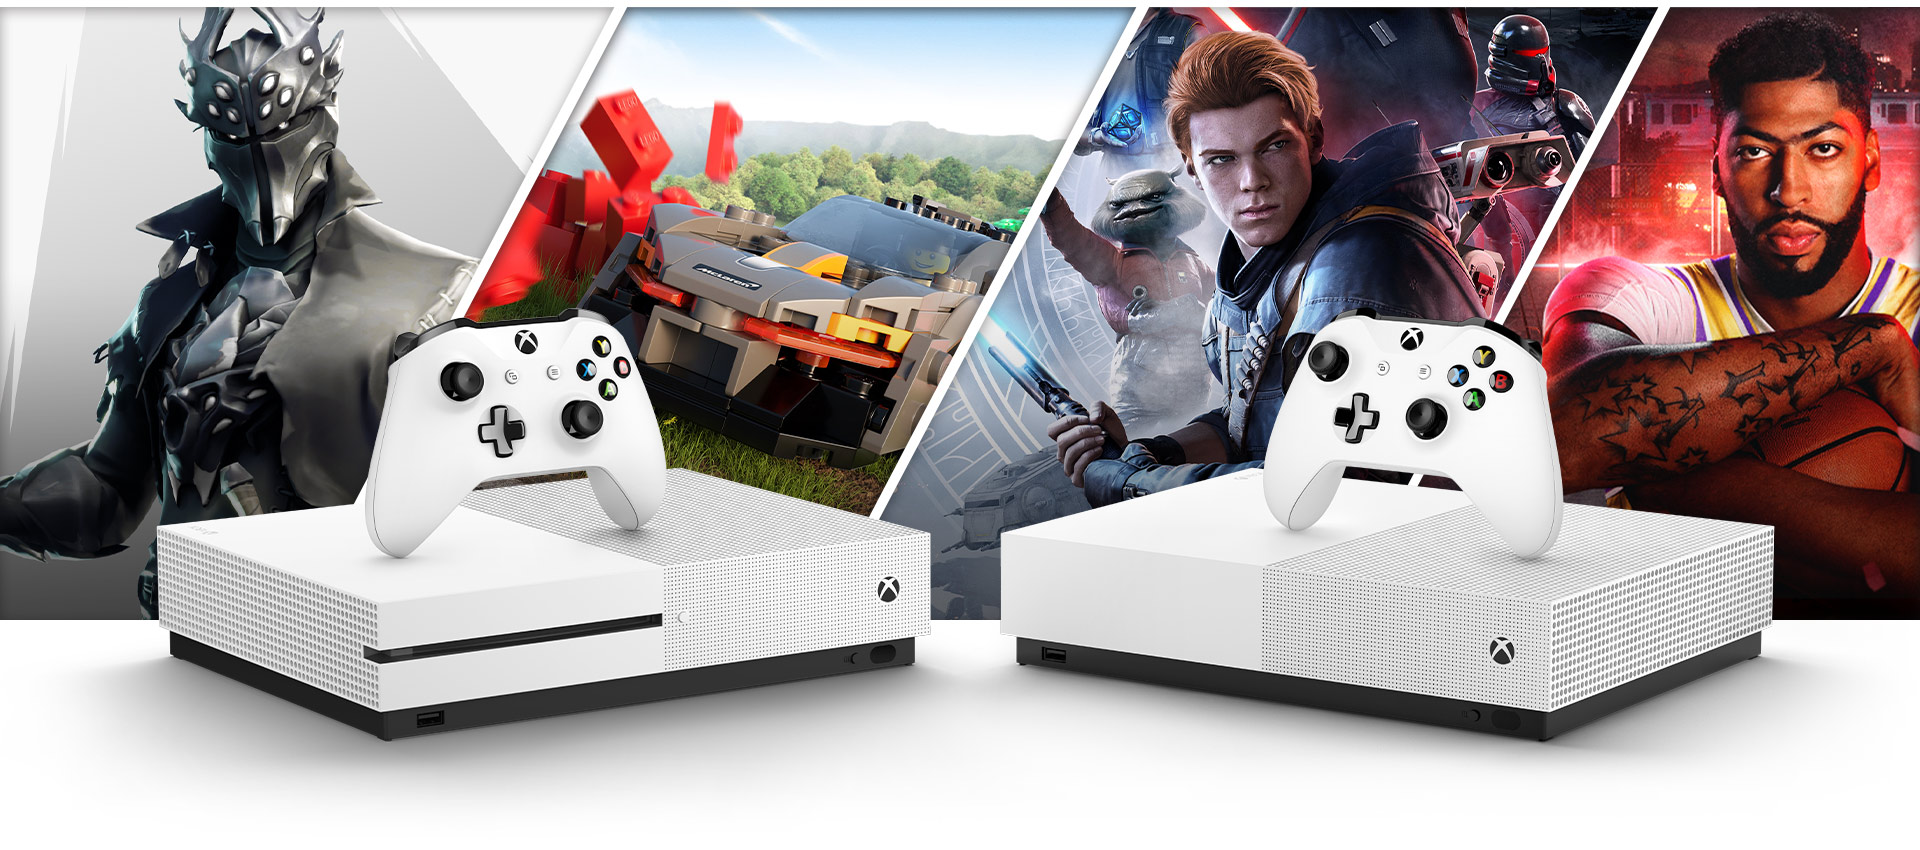 Grafika Fortnite, Forza Horizon 4, Star Wars Jedi Fallen Order a NBA 2K20 za konzolemi Xbox One S a Xbox One S All Digital Edition.